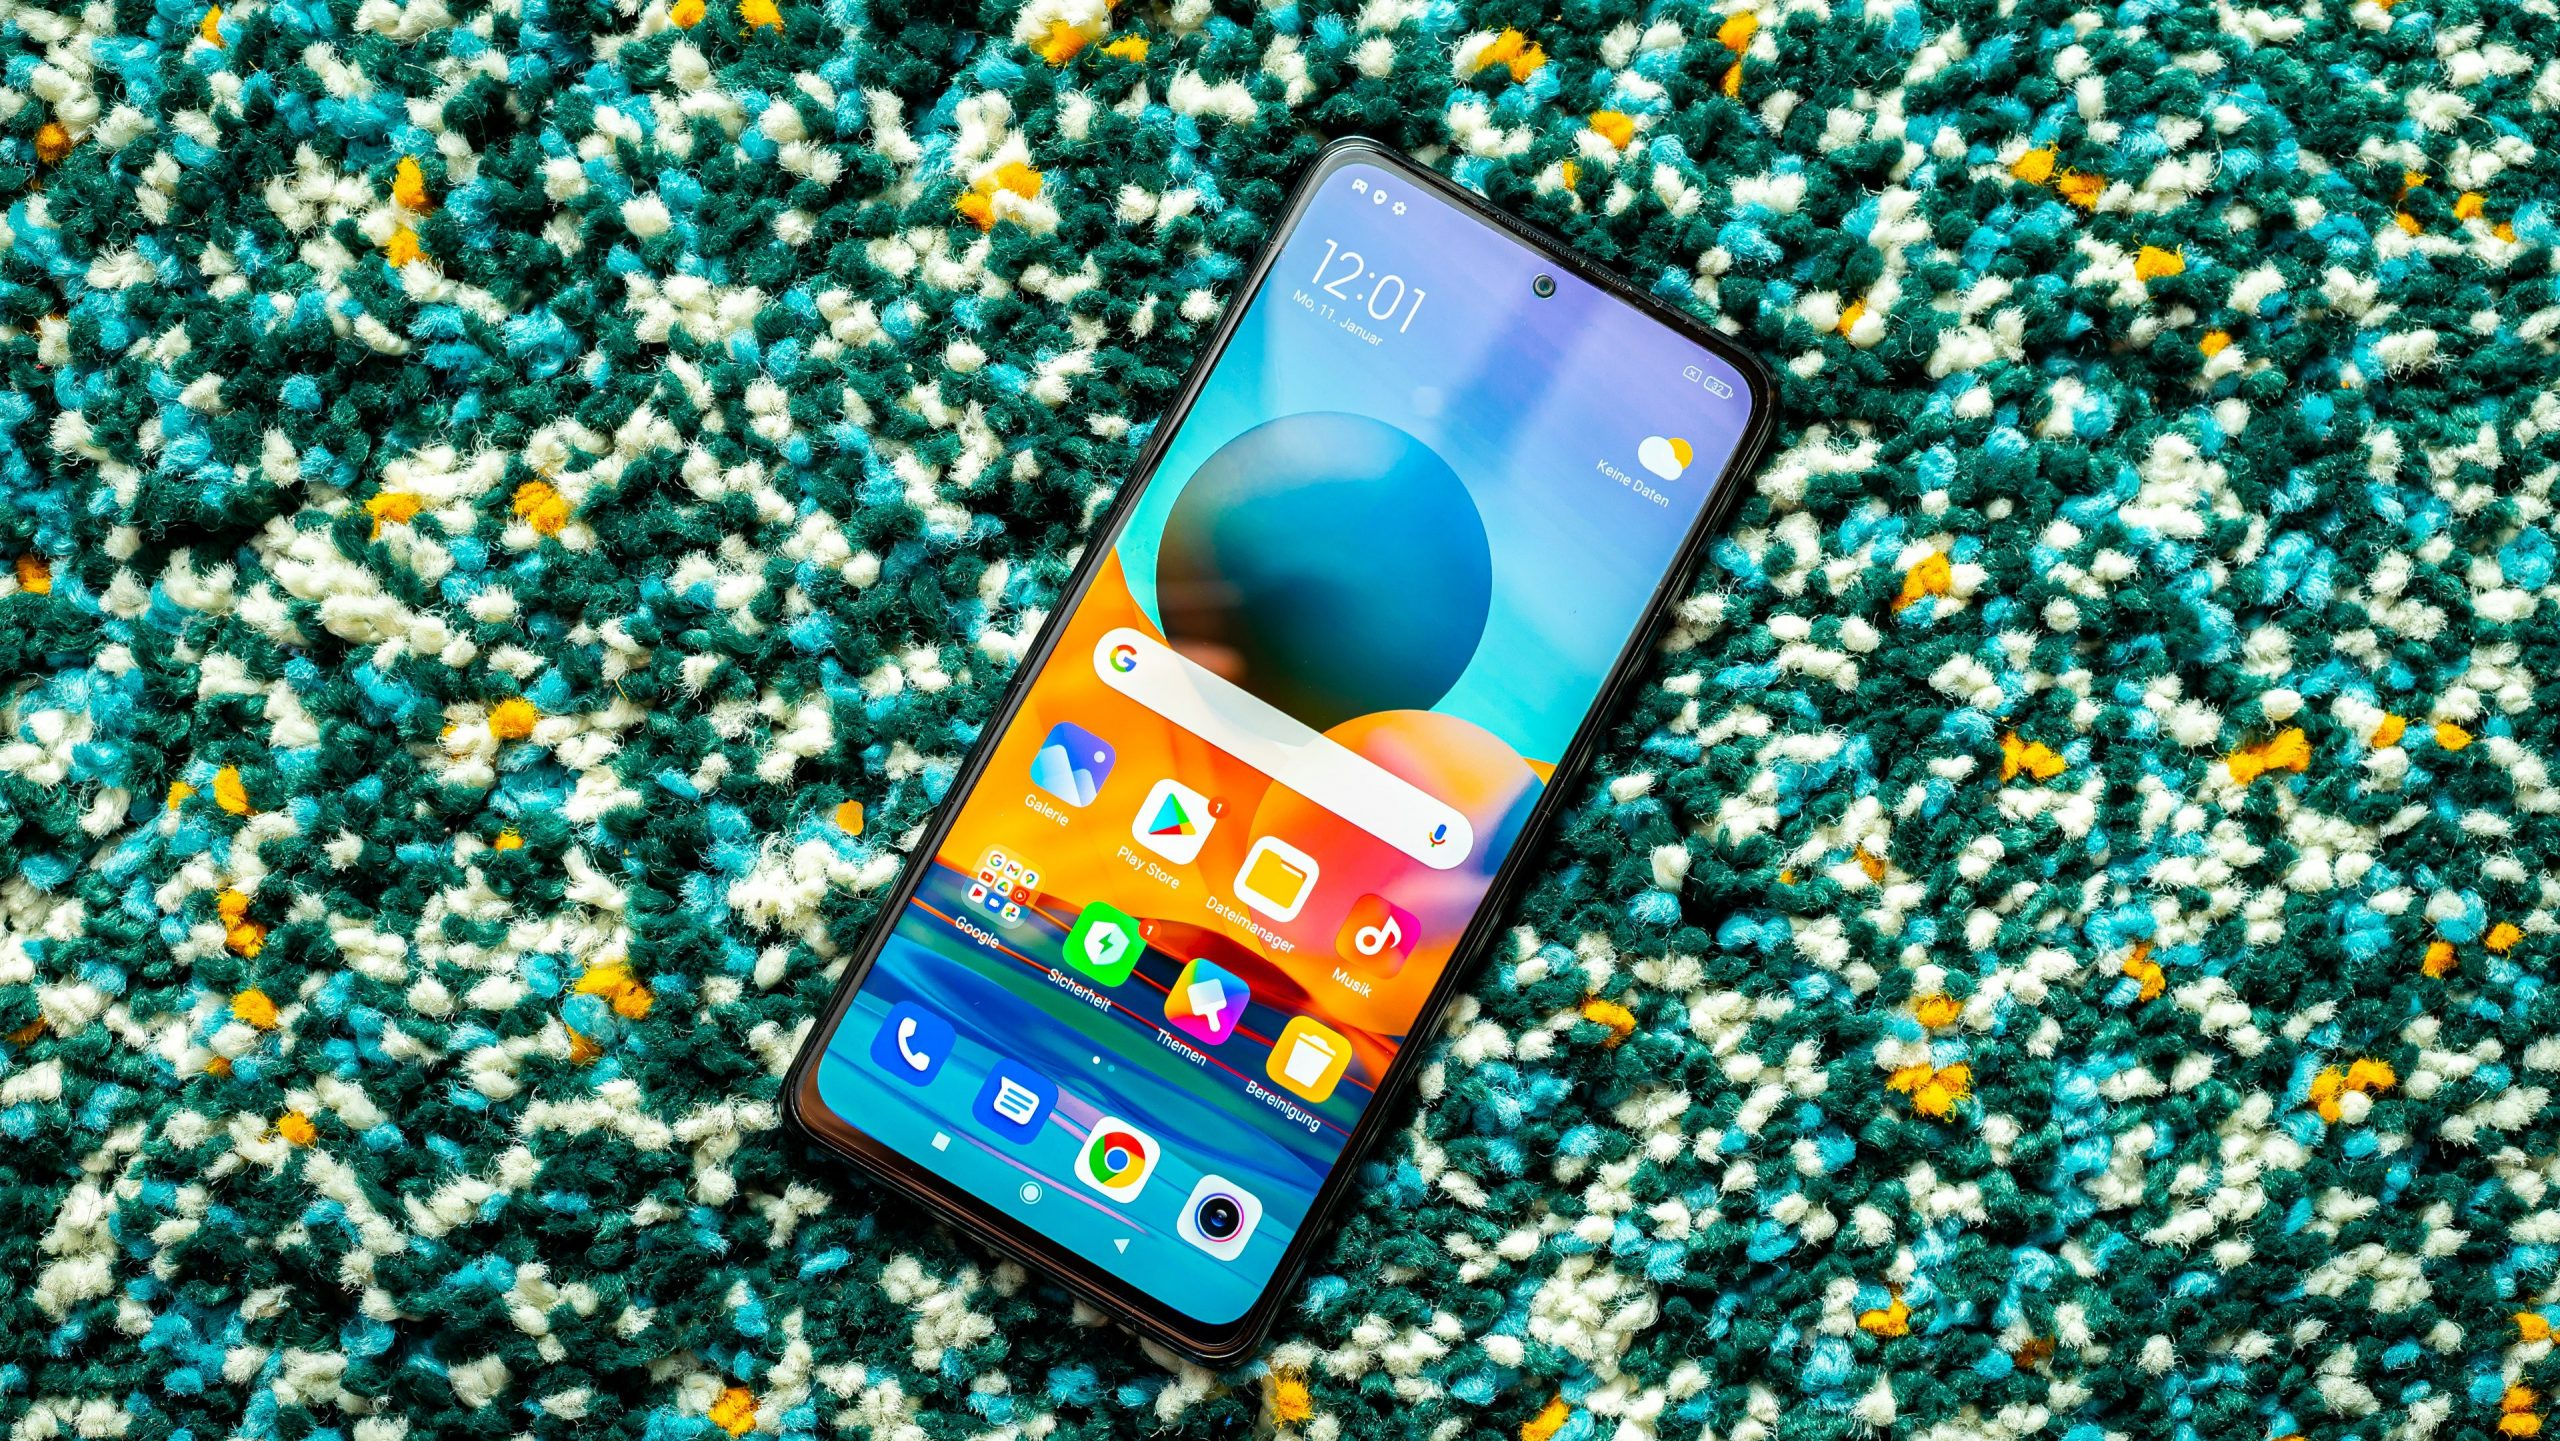 Redmi Note 10 Pro , Redmi Note 10 Pro Cam ,Redmi Note 10 Pro Camera test,Redmi Note 10 Pro Screen Repair, Redmi Note 10 Pro Camera, Redmi Note 10 Pro Unboxing, Redmi Note 10 Pro Hands-on